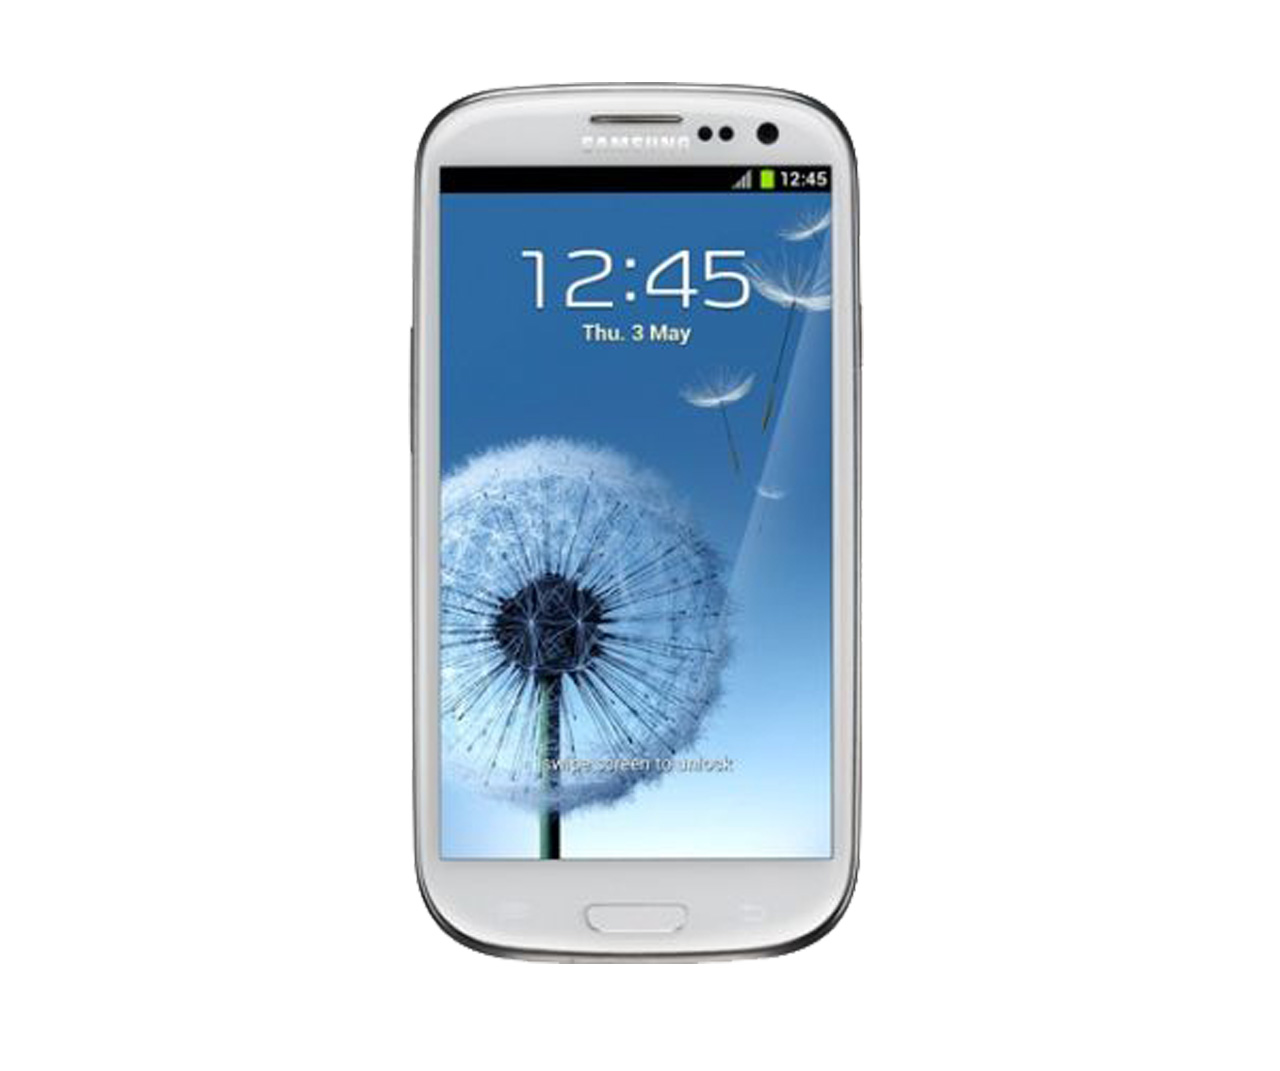 Galaxy S3 Power Button/ Lock Button Repair